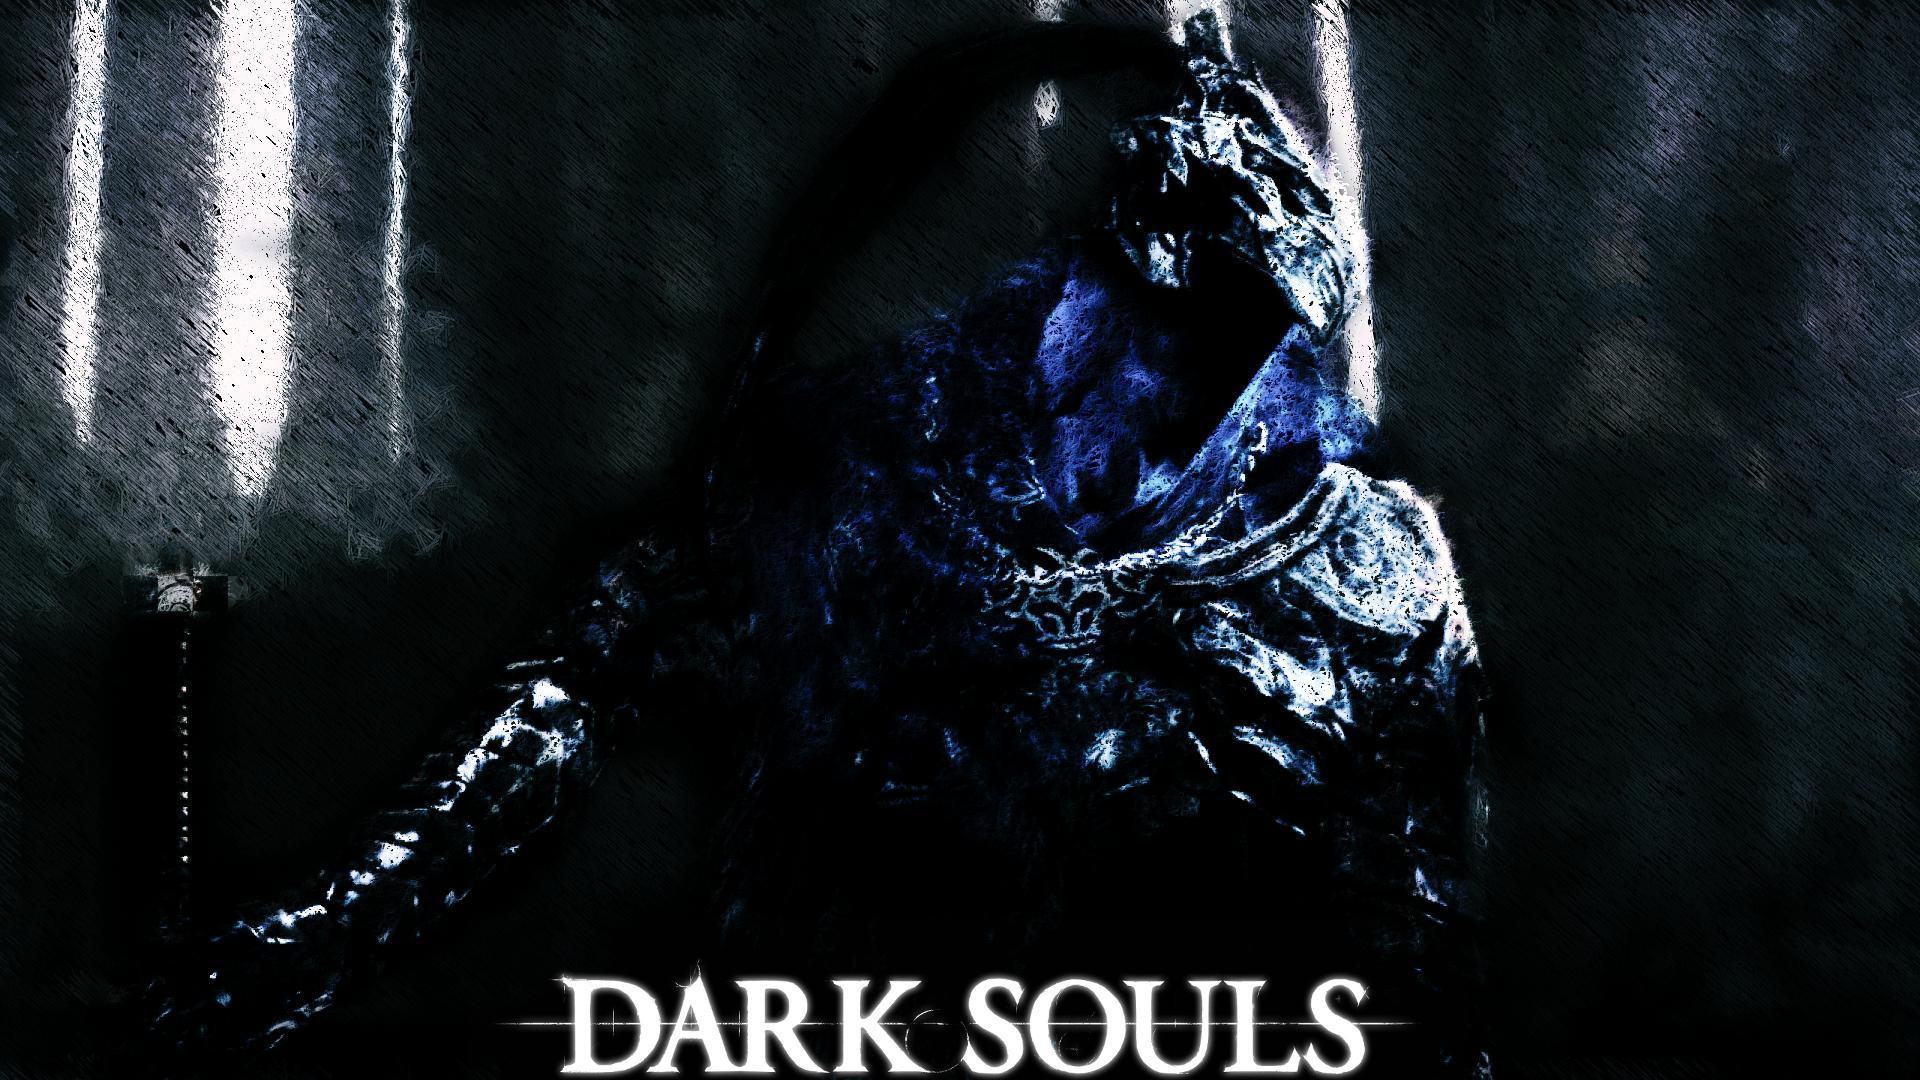 dark souls wallpaper breaking - photo #36